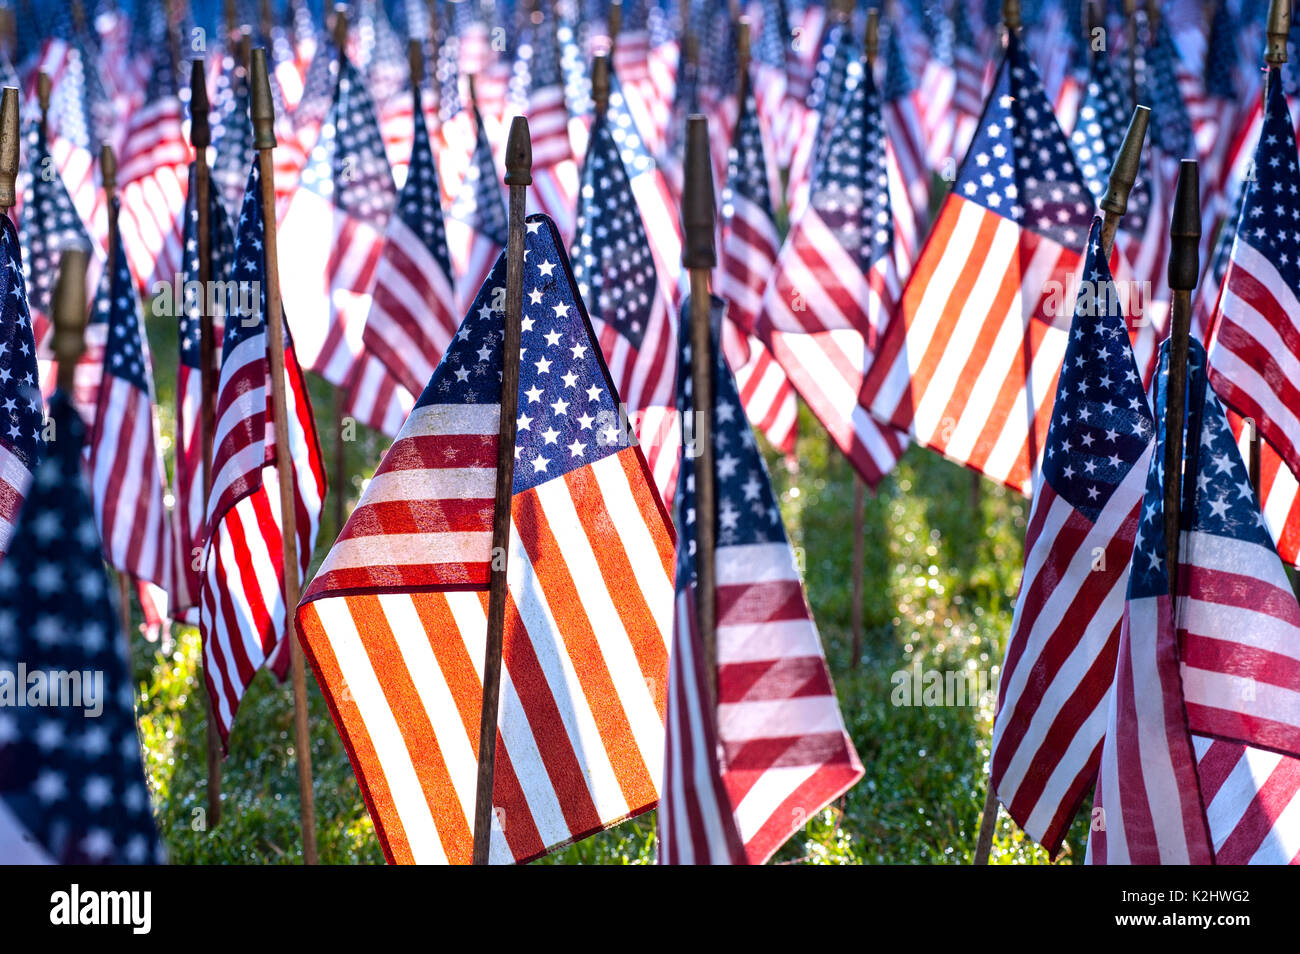 Field of Flags memorial honoring US Iraq war dead. - Stock Image